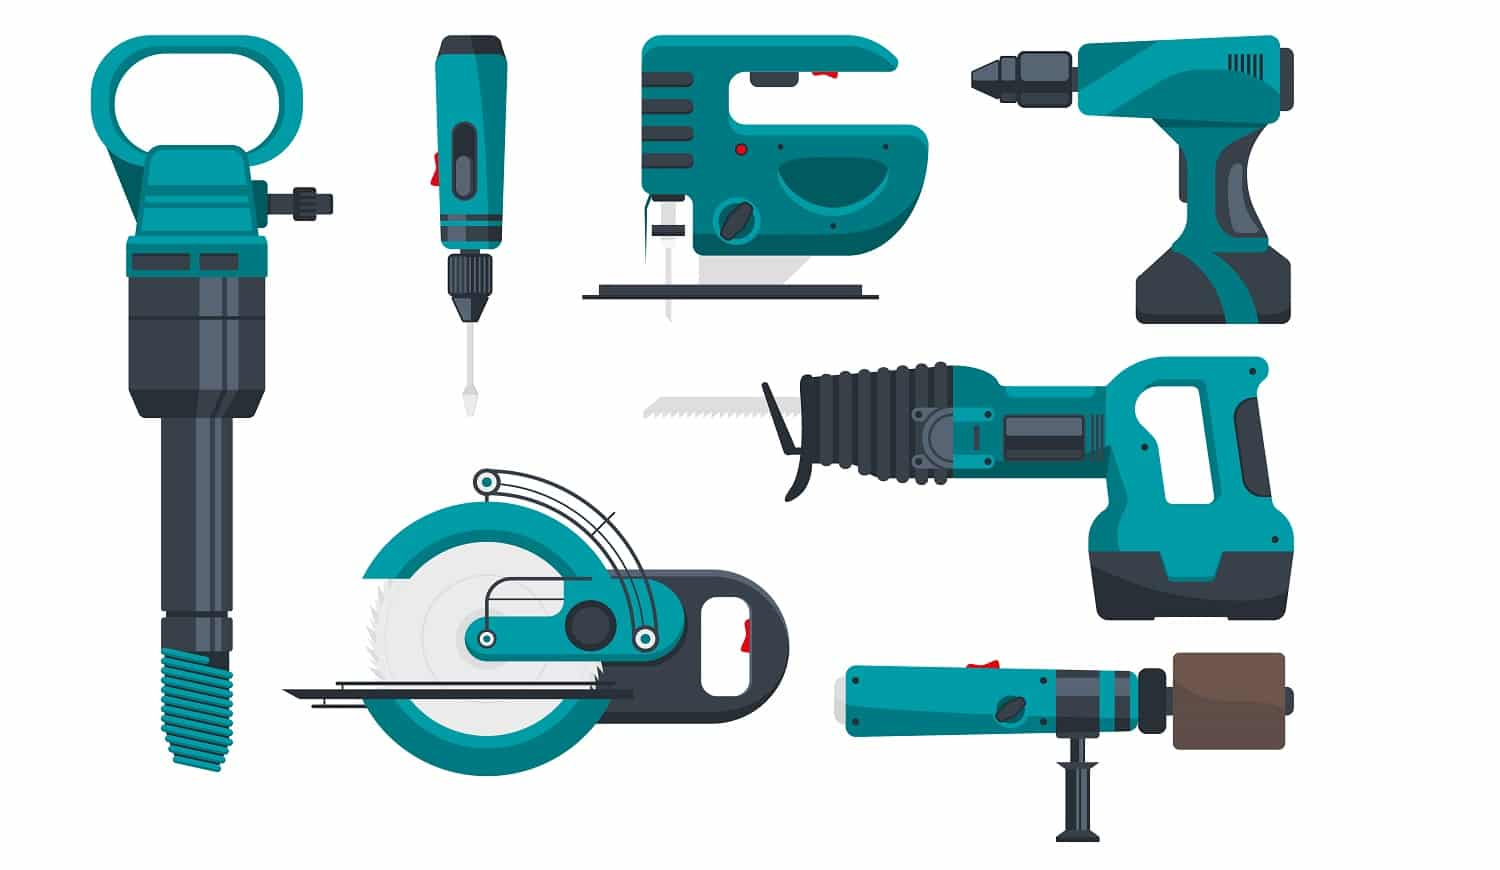 Construction electro tools for repair. Vector pictures in flat style. Screwdriver and equipment drill and power saw electric illustration